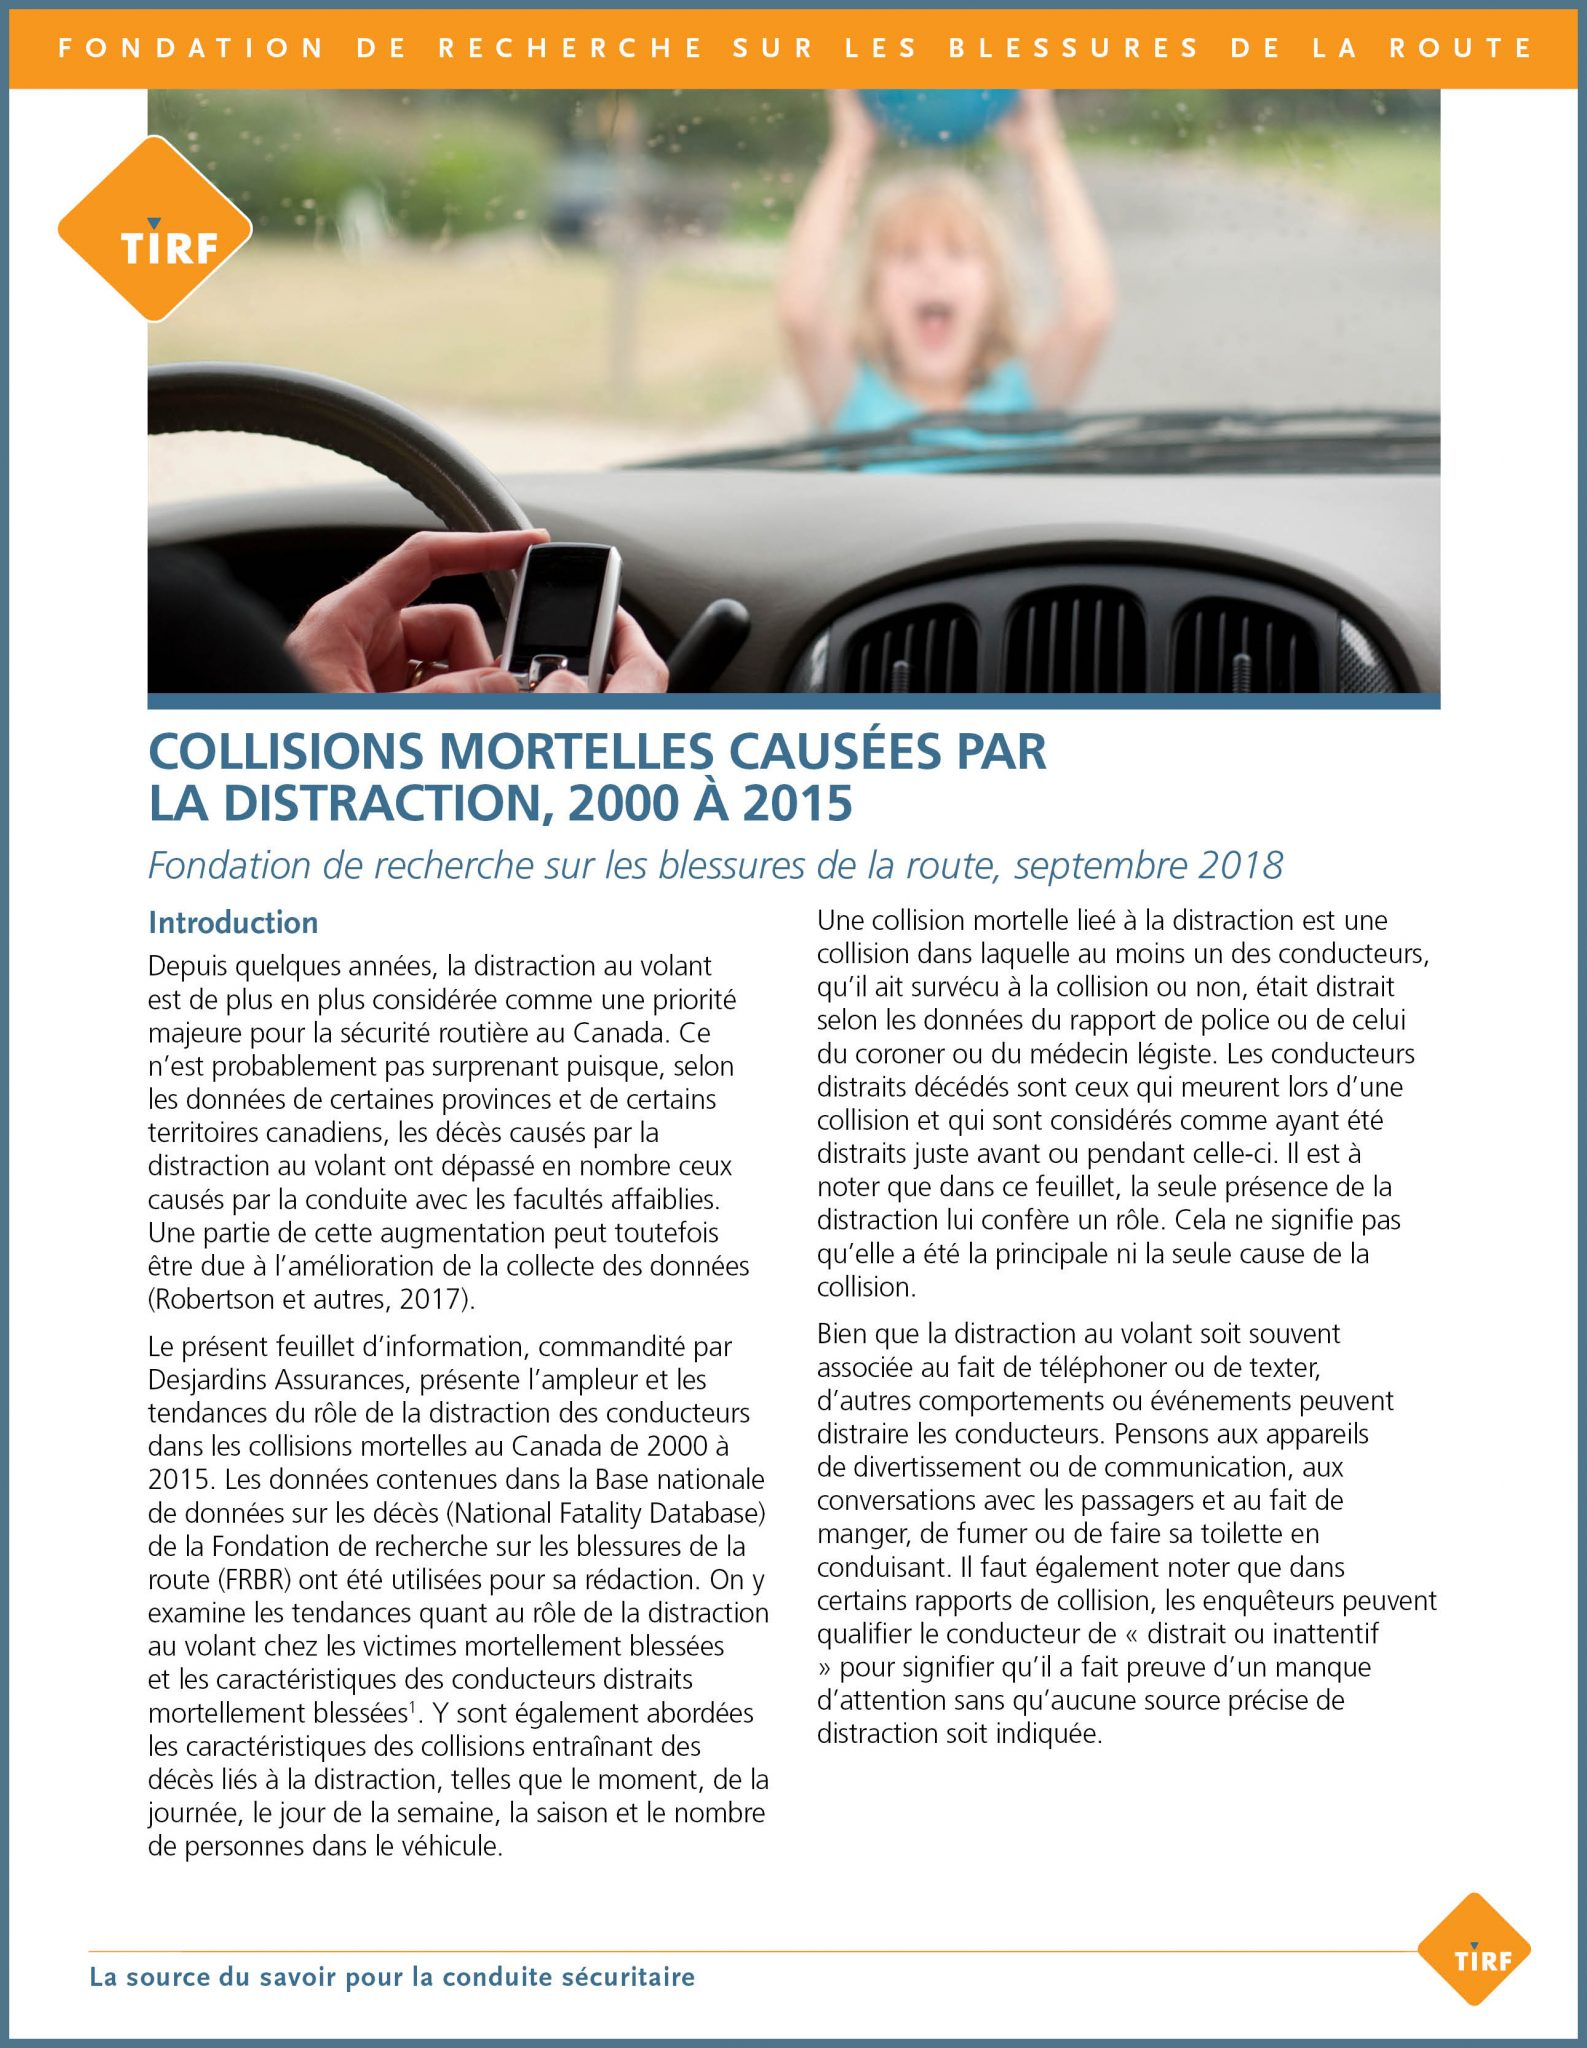 Collisions mortelles causées par la distraction, 2000 à 2015